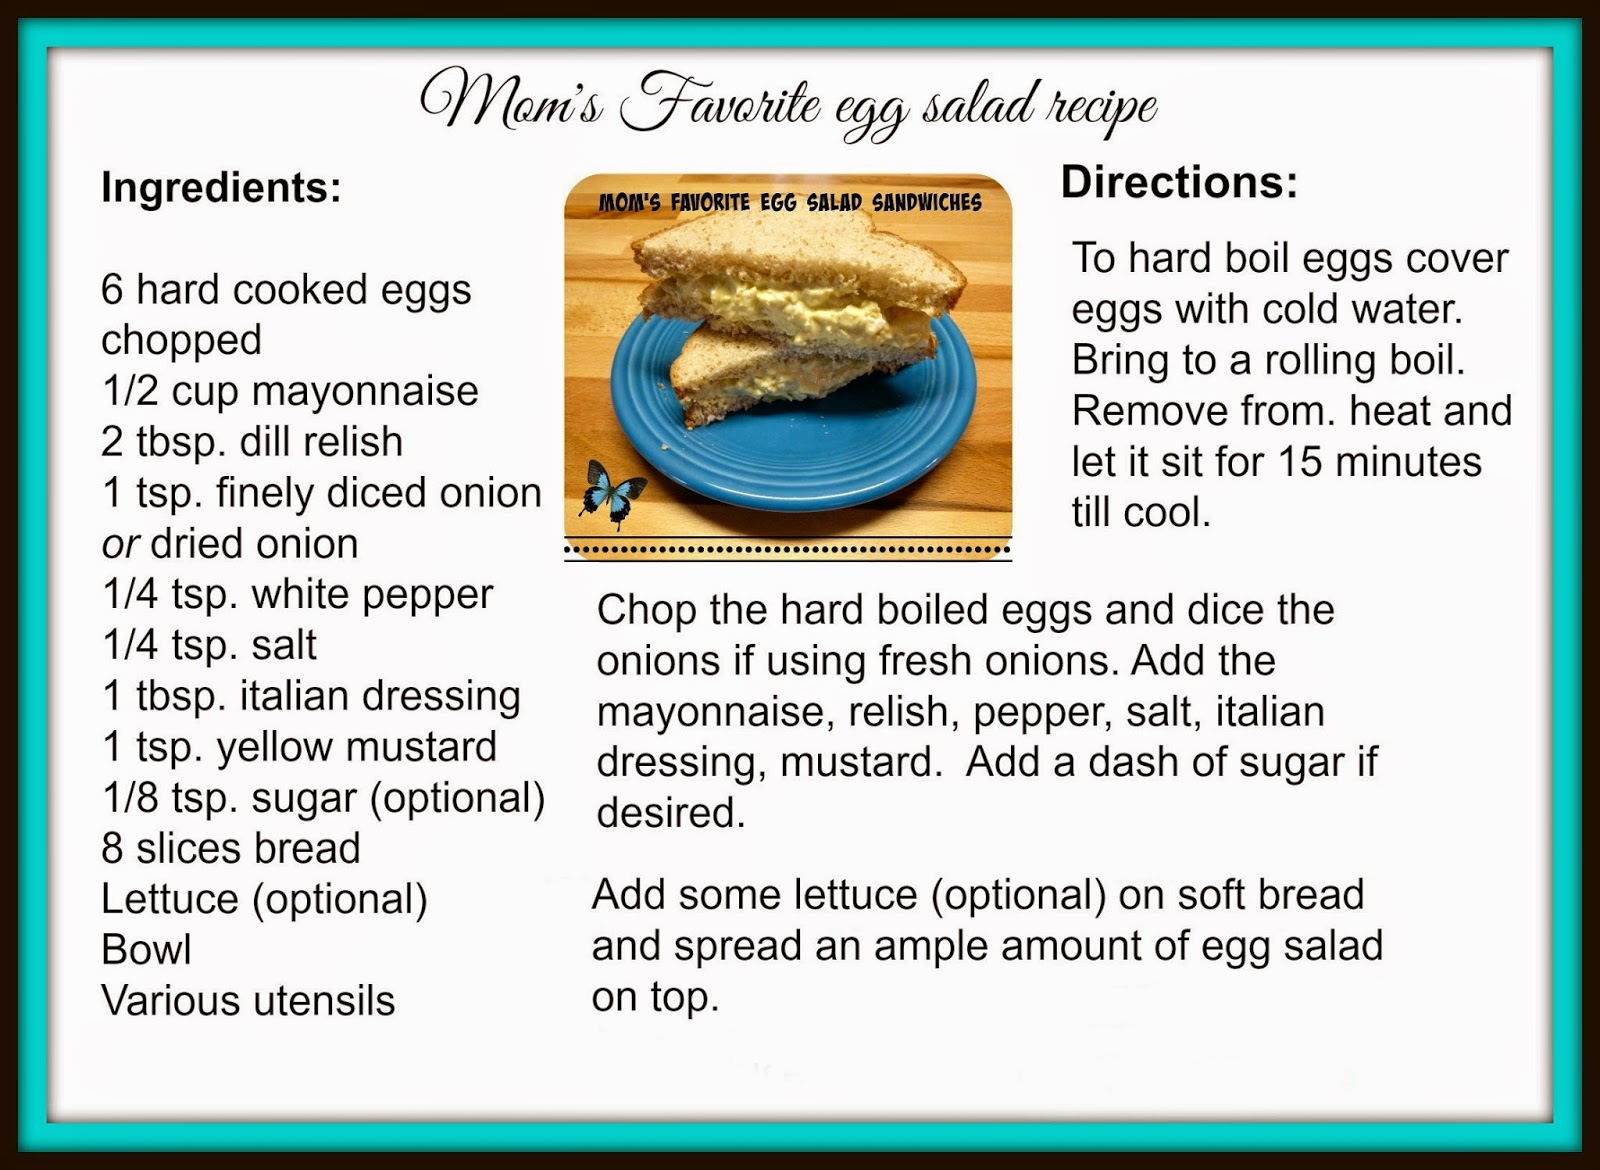 Egg salad recipe card